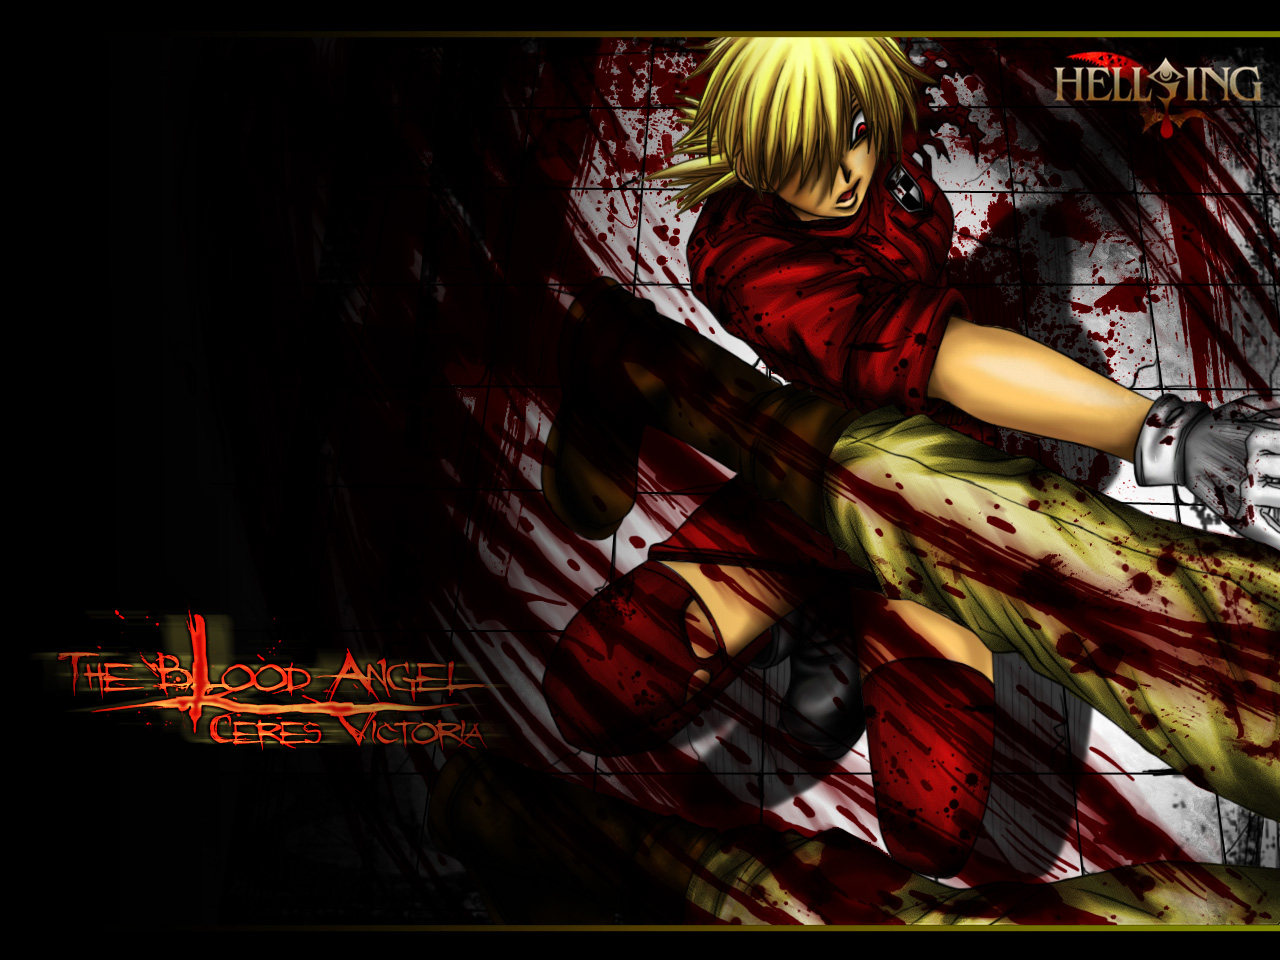 Seras Victoria HD Wallpaper 1280x960 Your daily Anime Wallpaper 1280x960